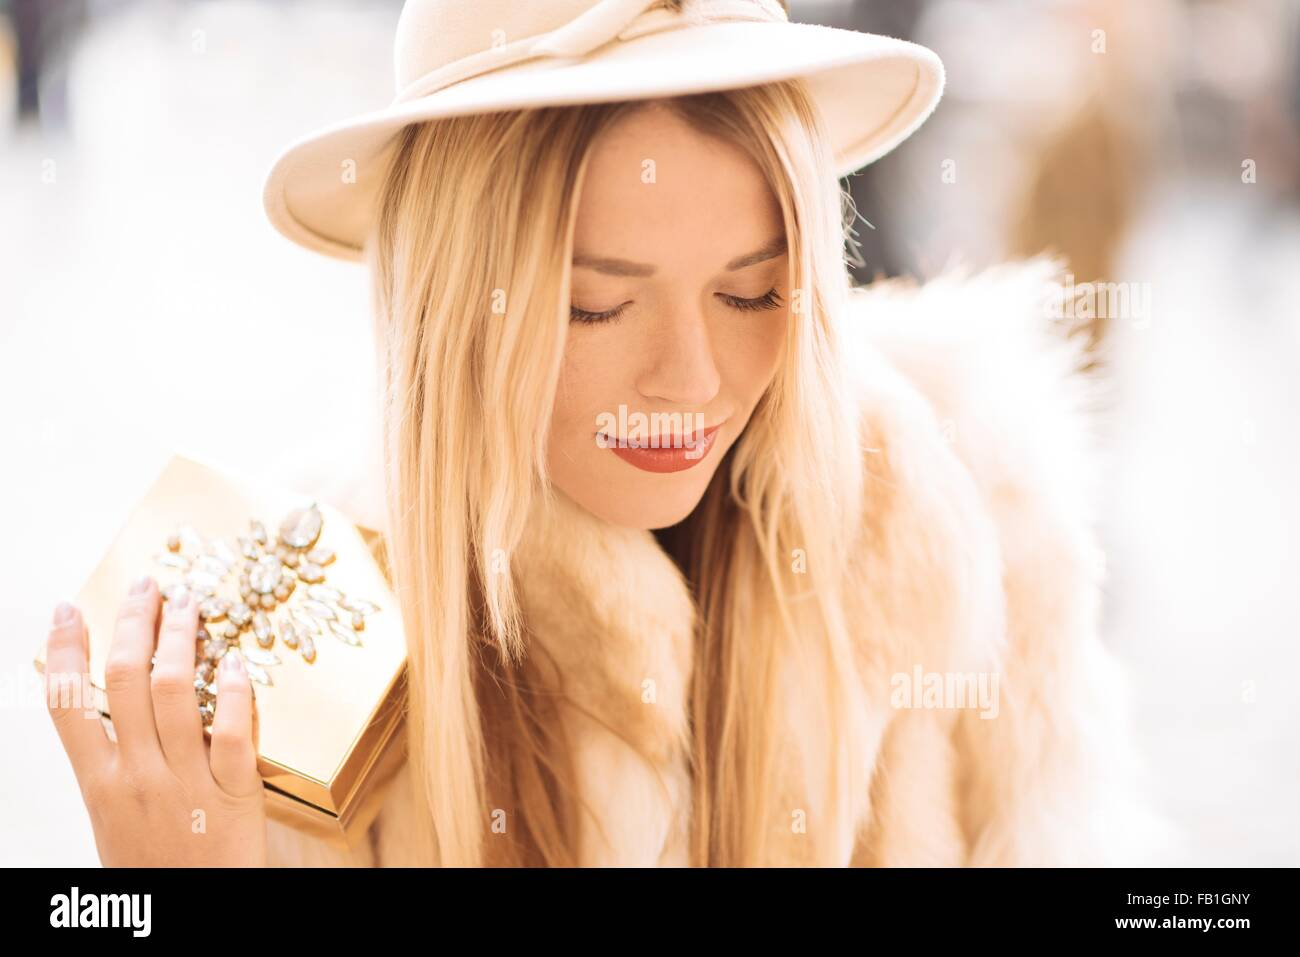 Stylish young woman holding gold jewelry box, Covent Garden, London, UK - Stock Image